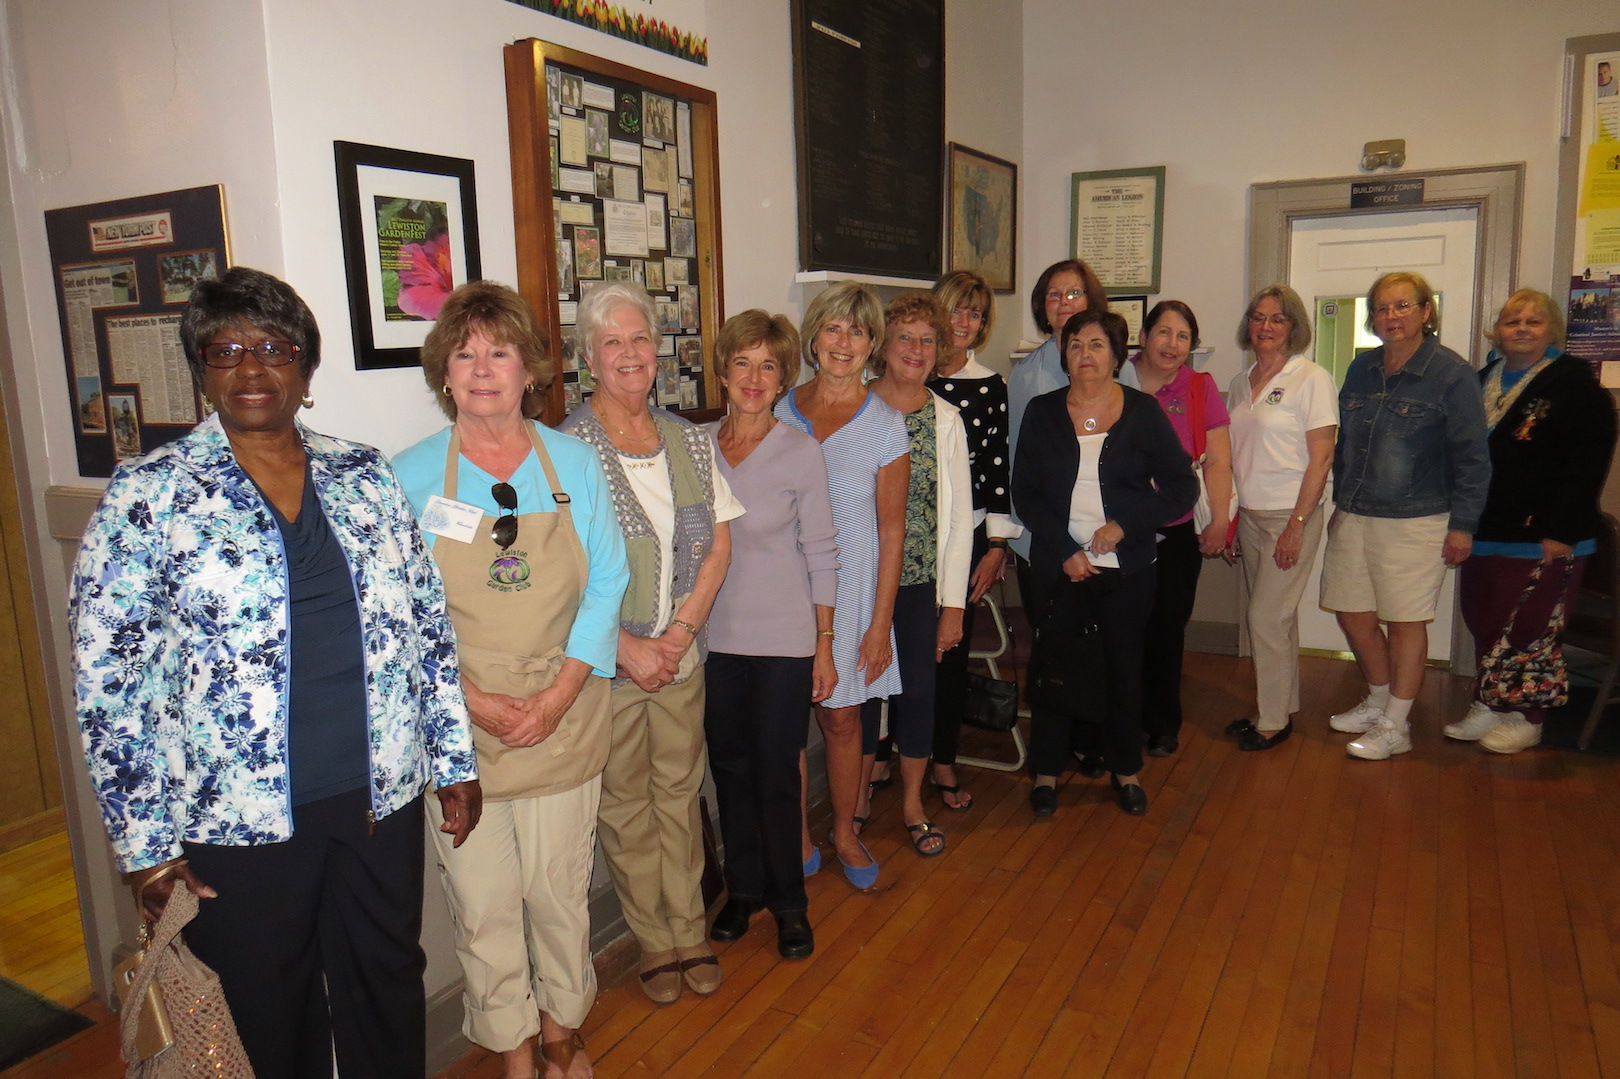 Members of the Lewiston Garden Club.